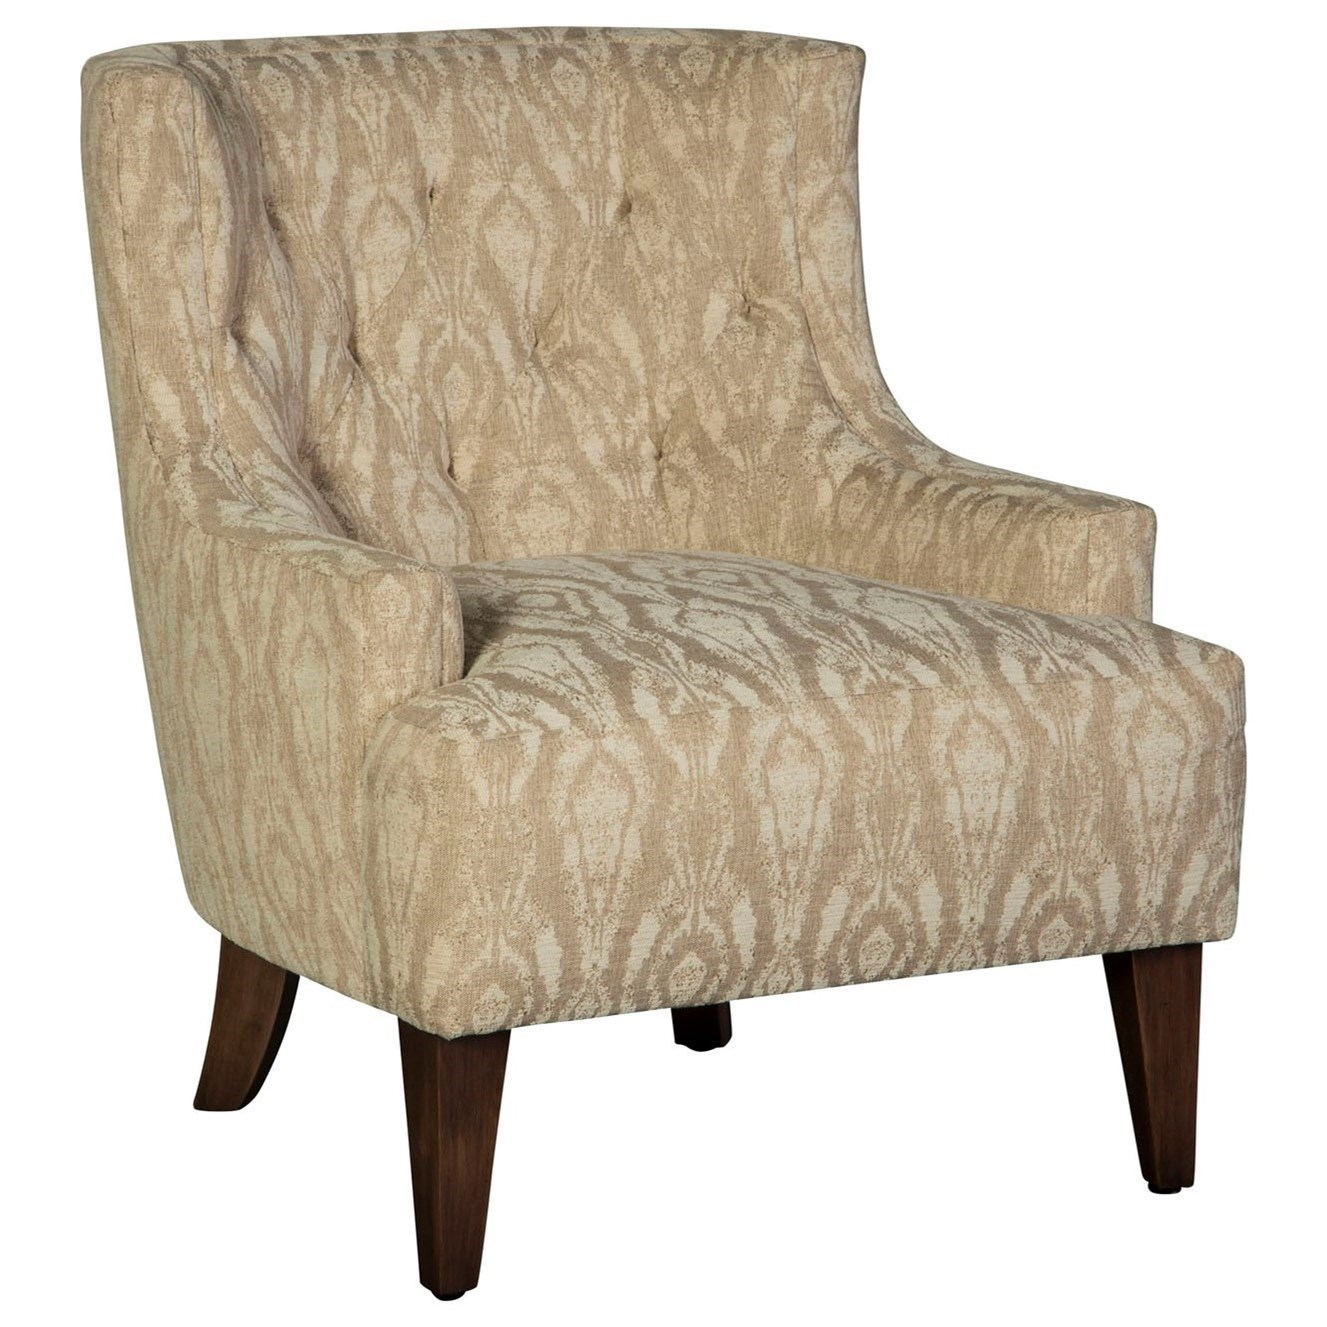 Jonathan Louis AccentuatesSedona Accent Chair